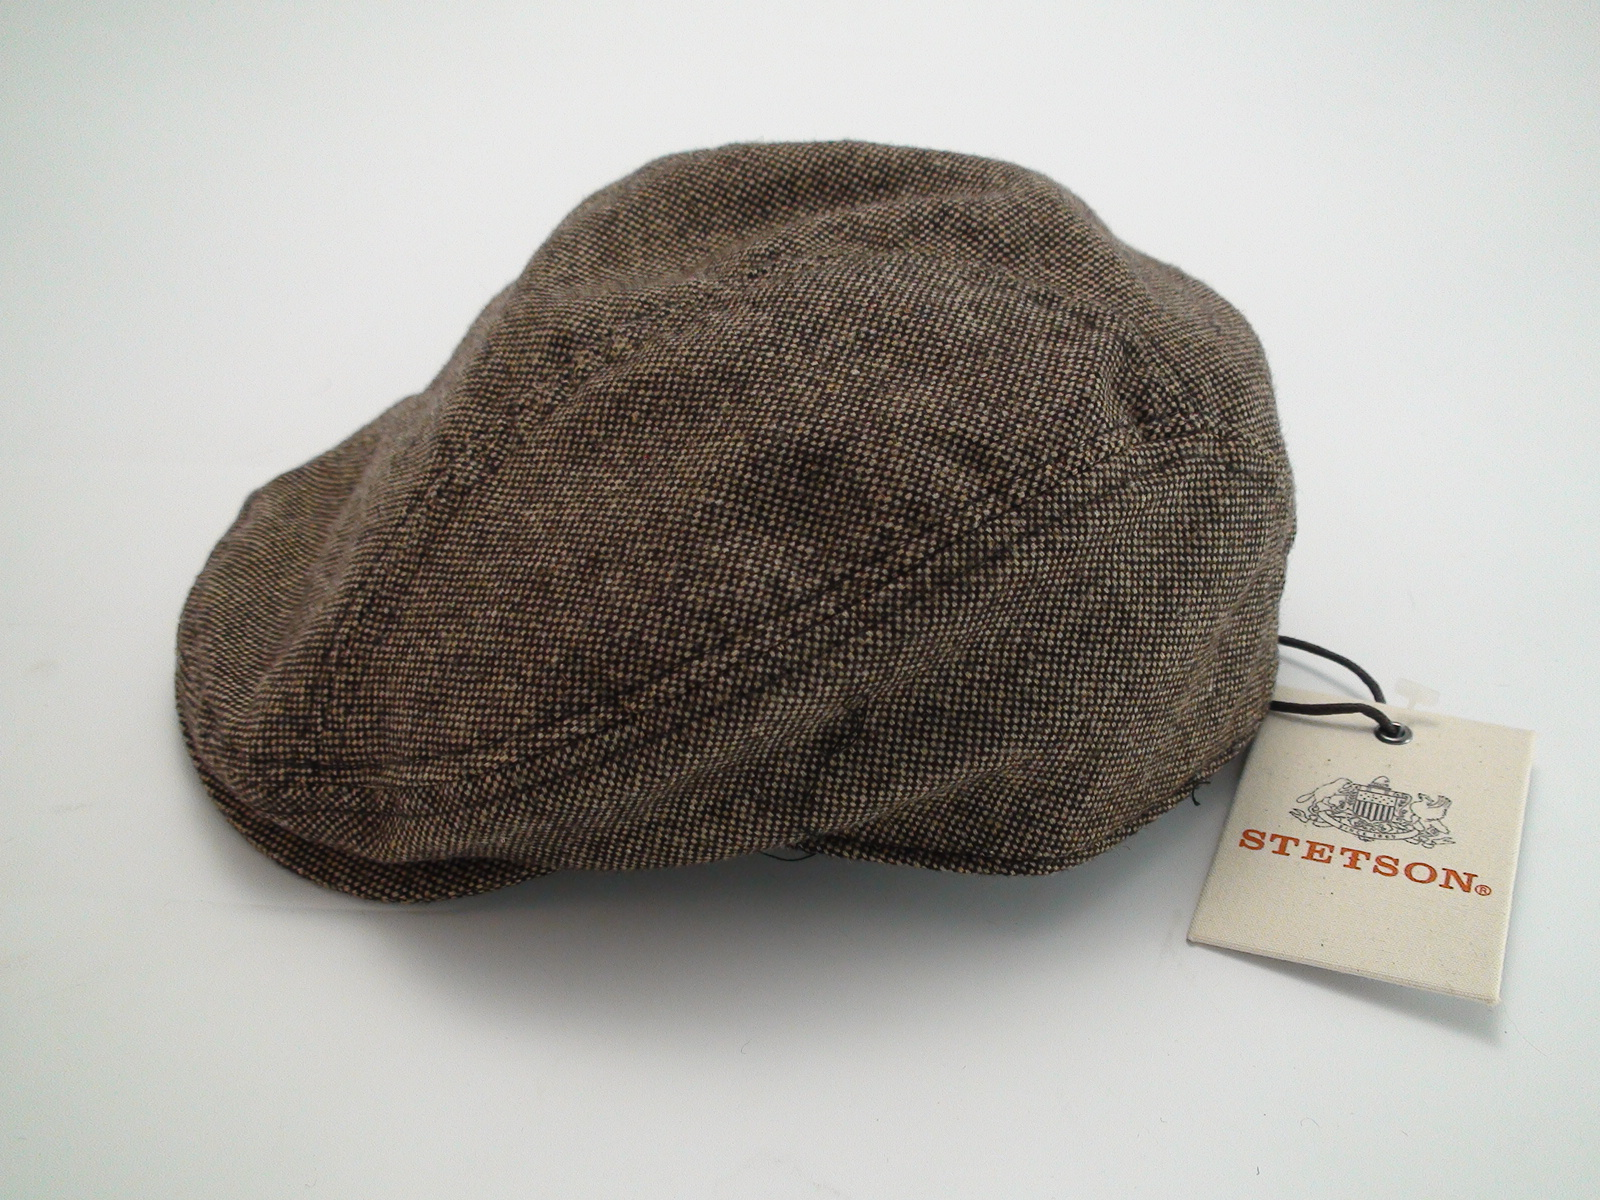 8adea61bb5 NEW Stetson Herringbone Ivy Brown Wool Blend Flat Cap Size Large